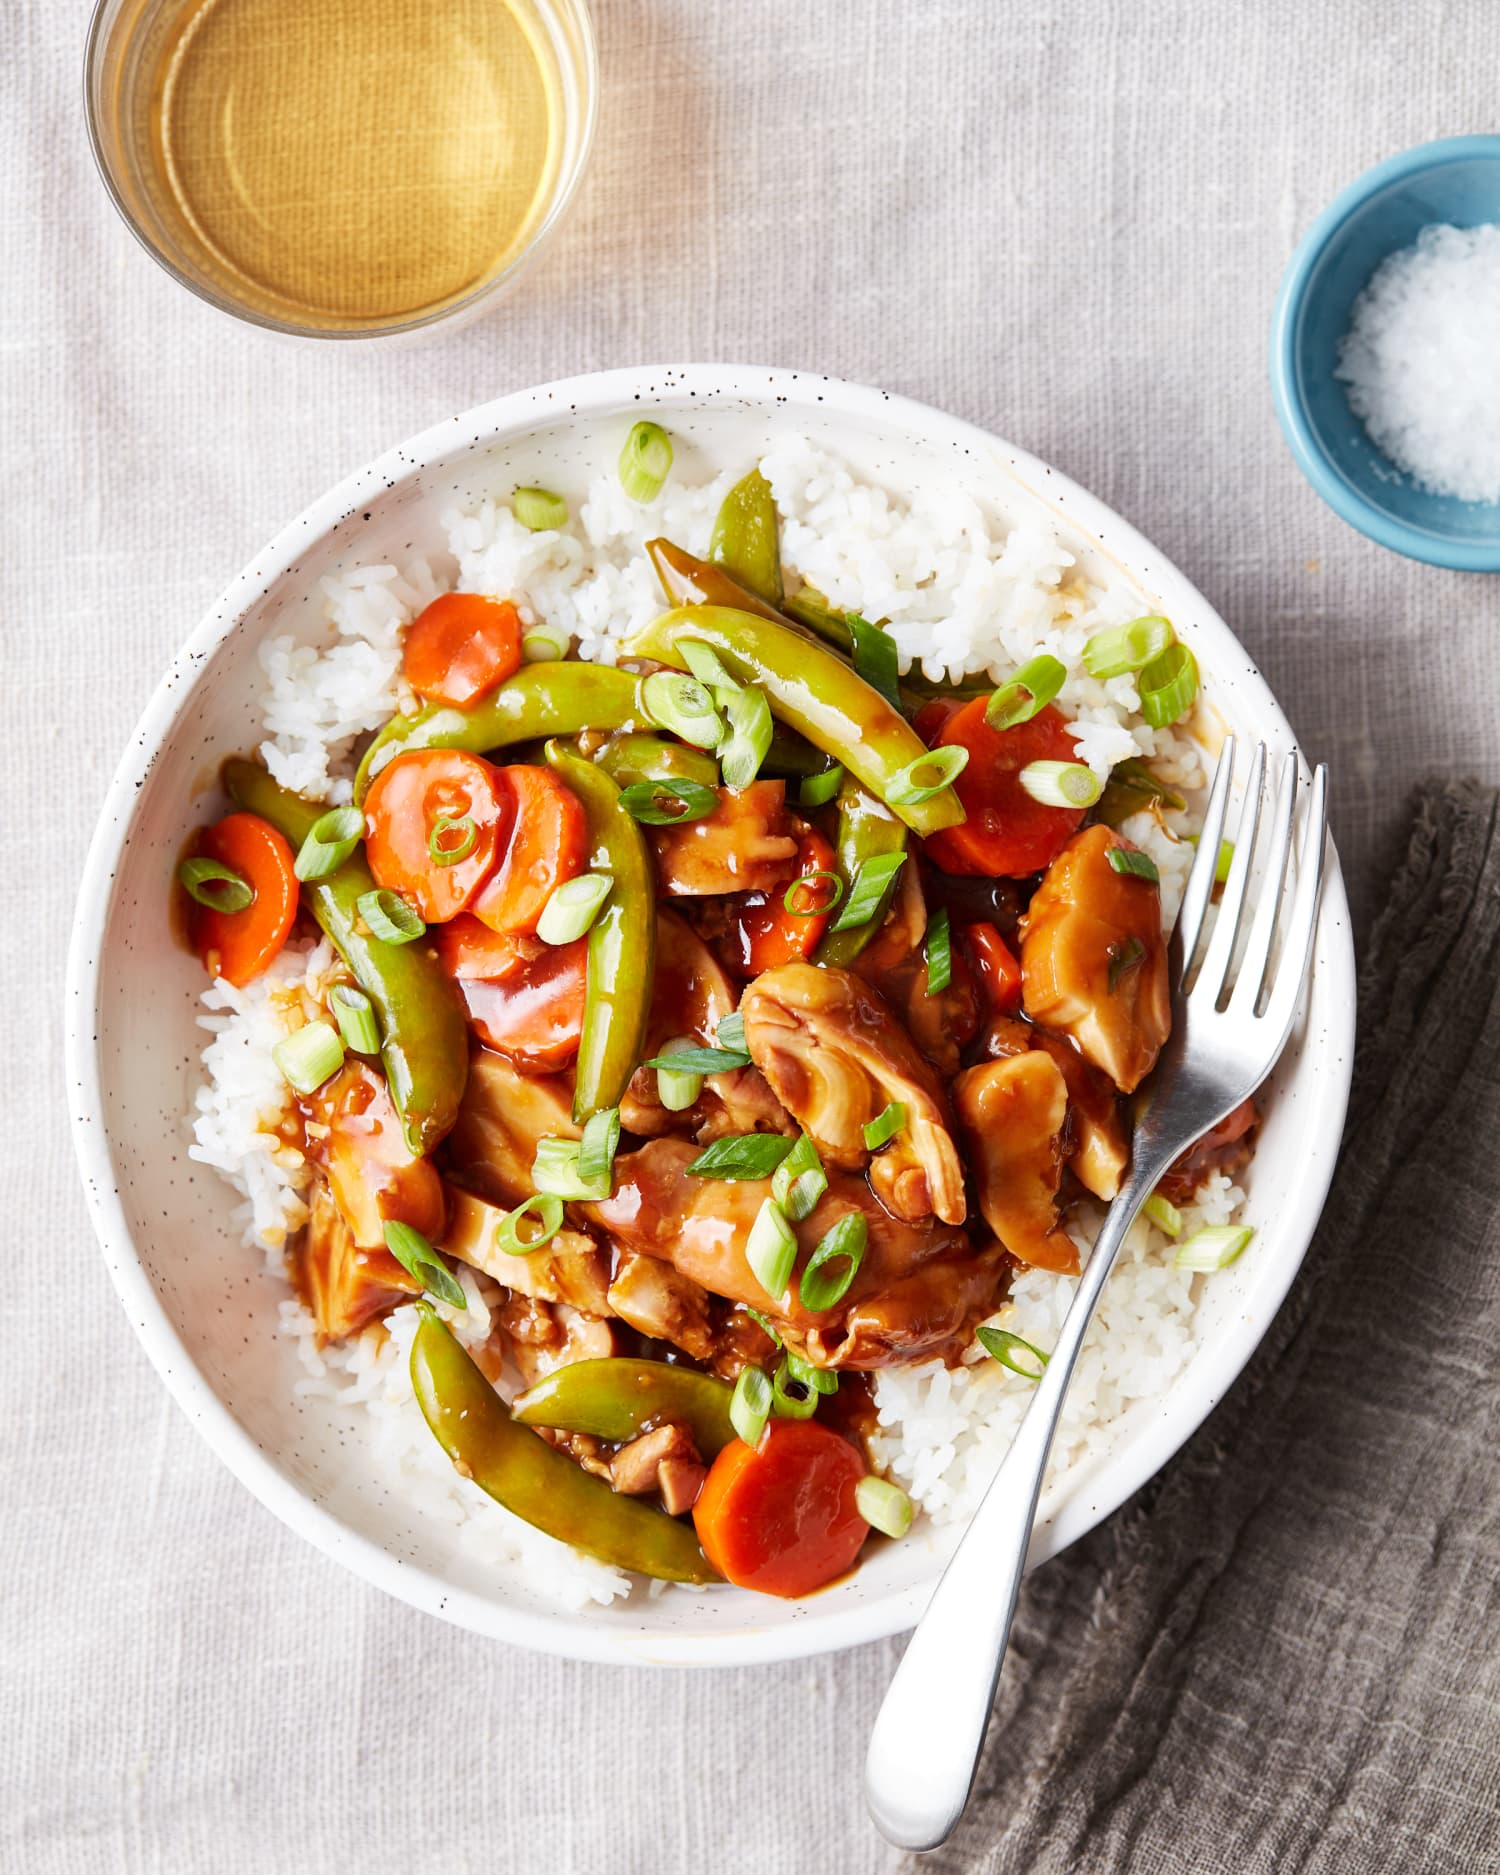 Pot-in-Pot: Make Teriyaki Chicken and Cook Rice in One Instant Pot